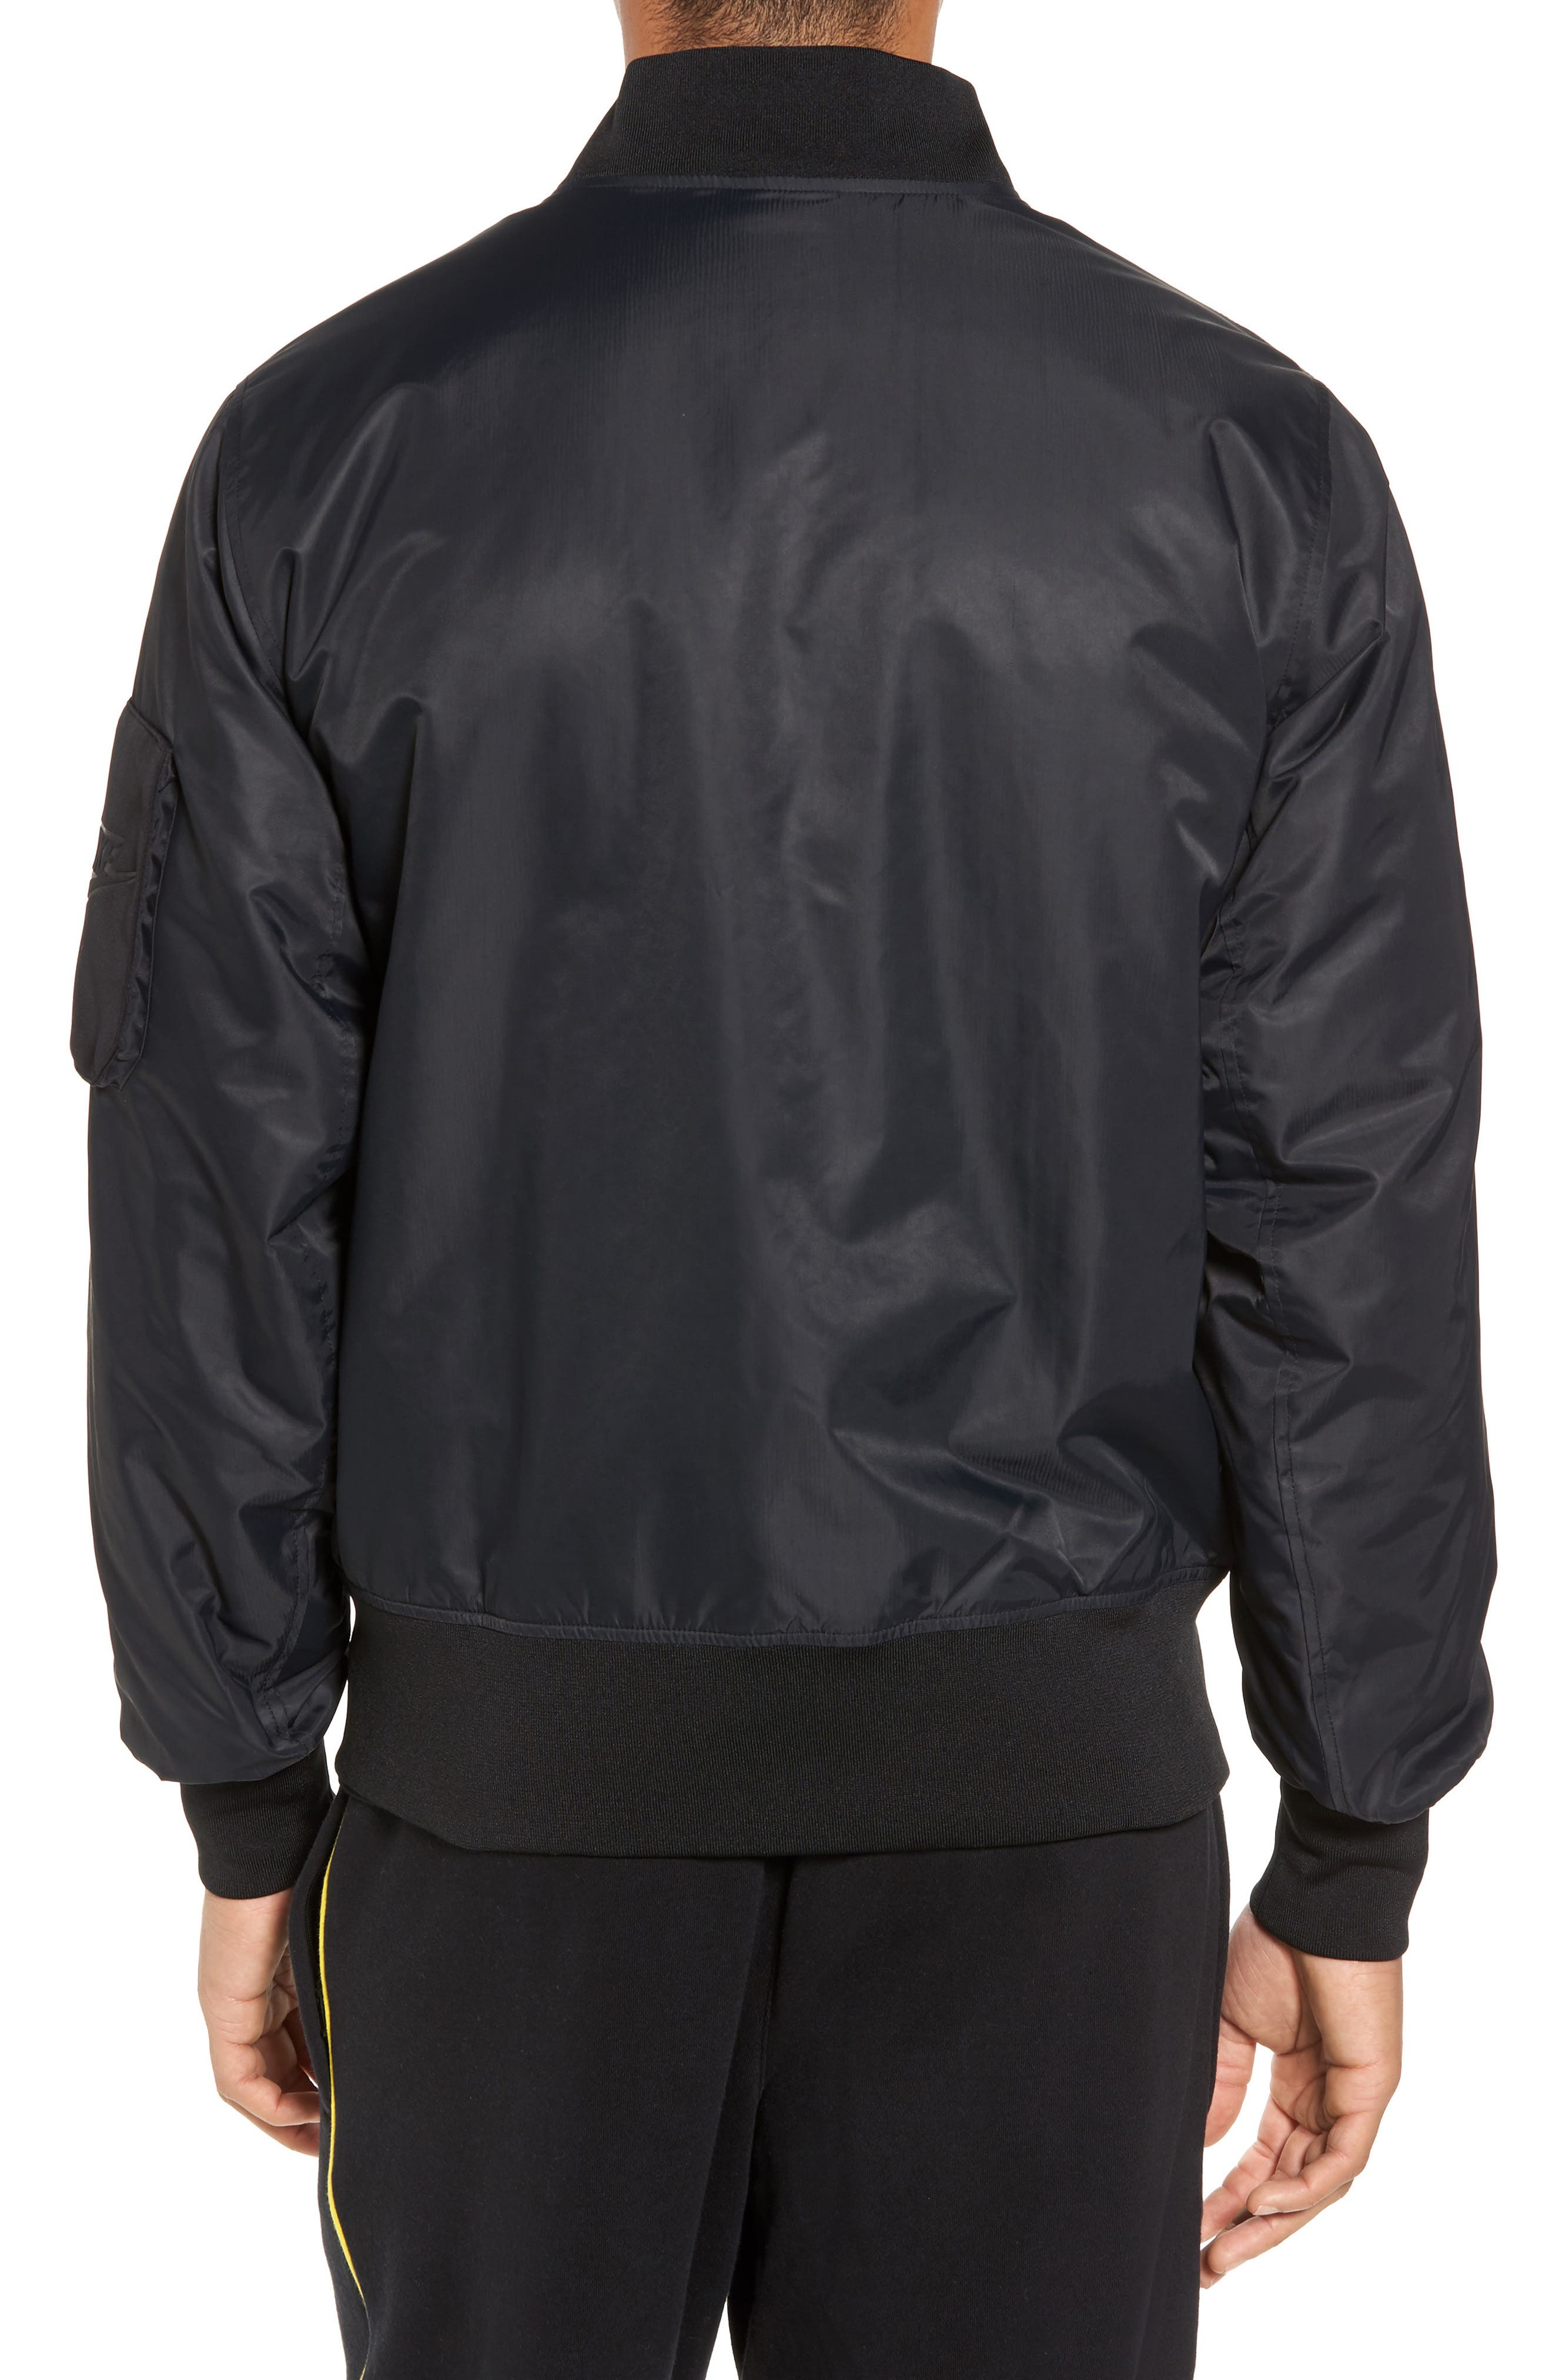 NSW Air Max Woven Bomber Jacket,                             Alternate thumbnail 2, color,                             010